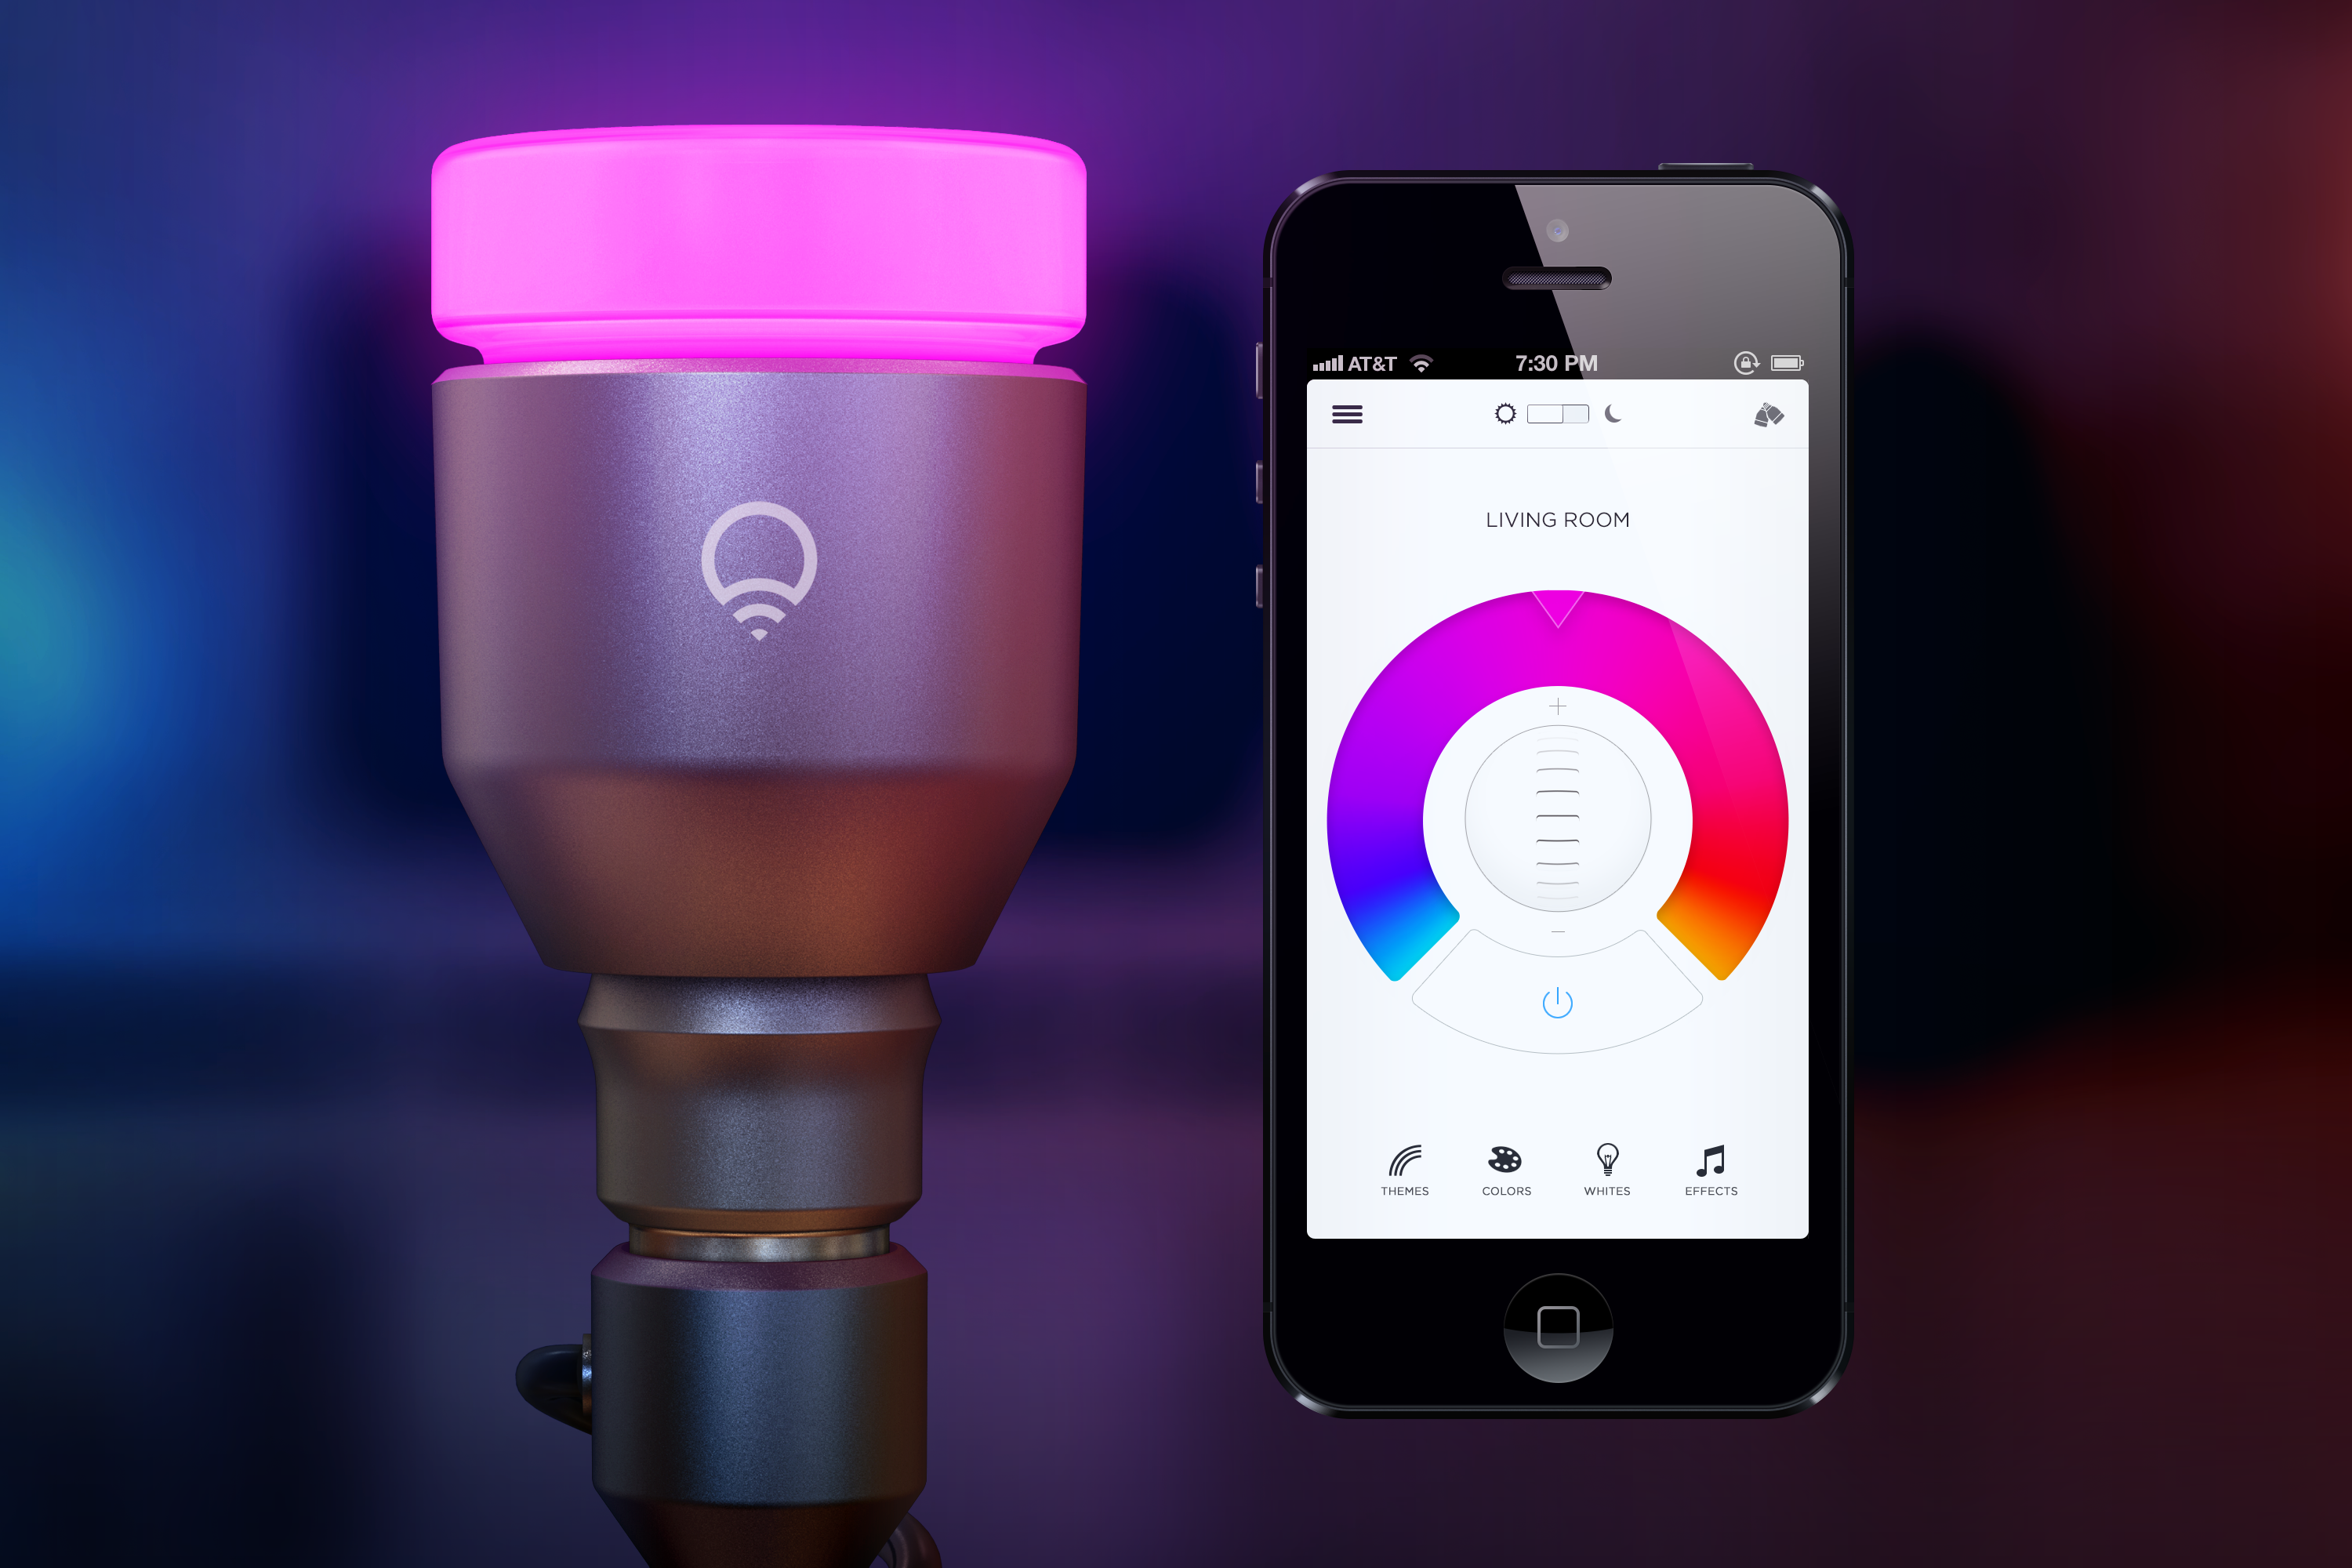 Lifx smart light bulbs worth a million dollars my smart home Smart light bulbs